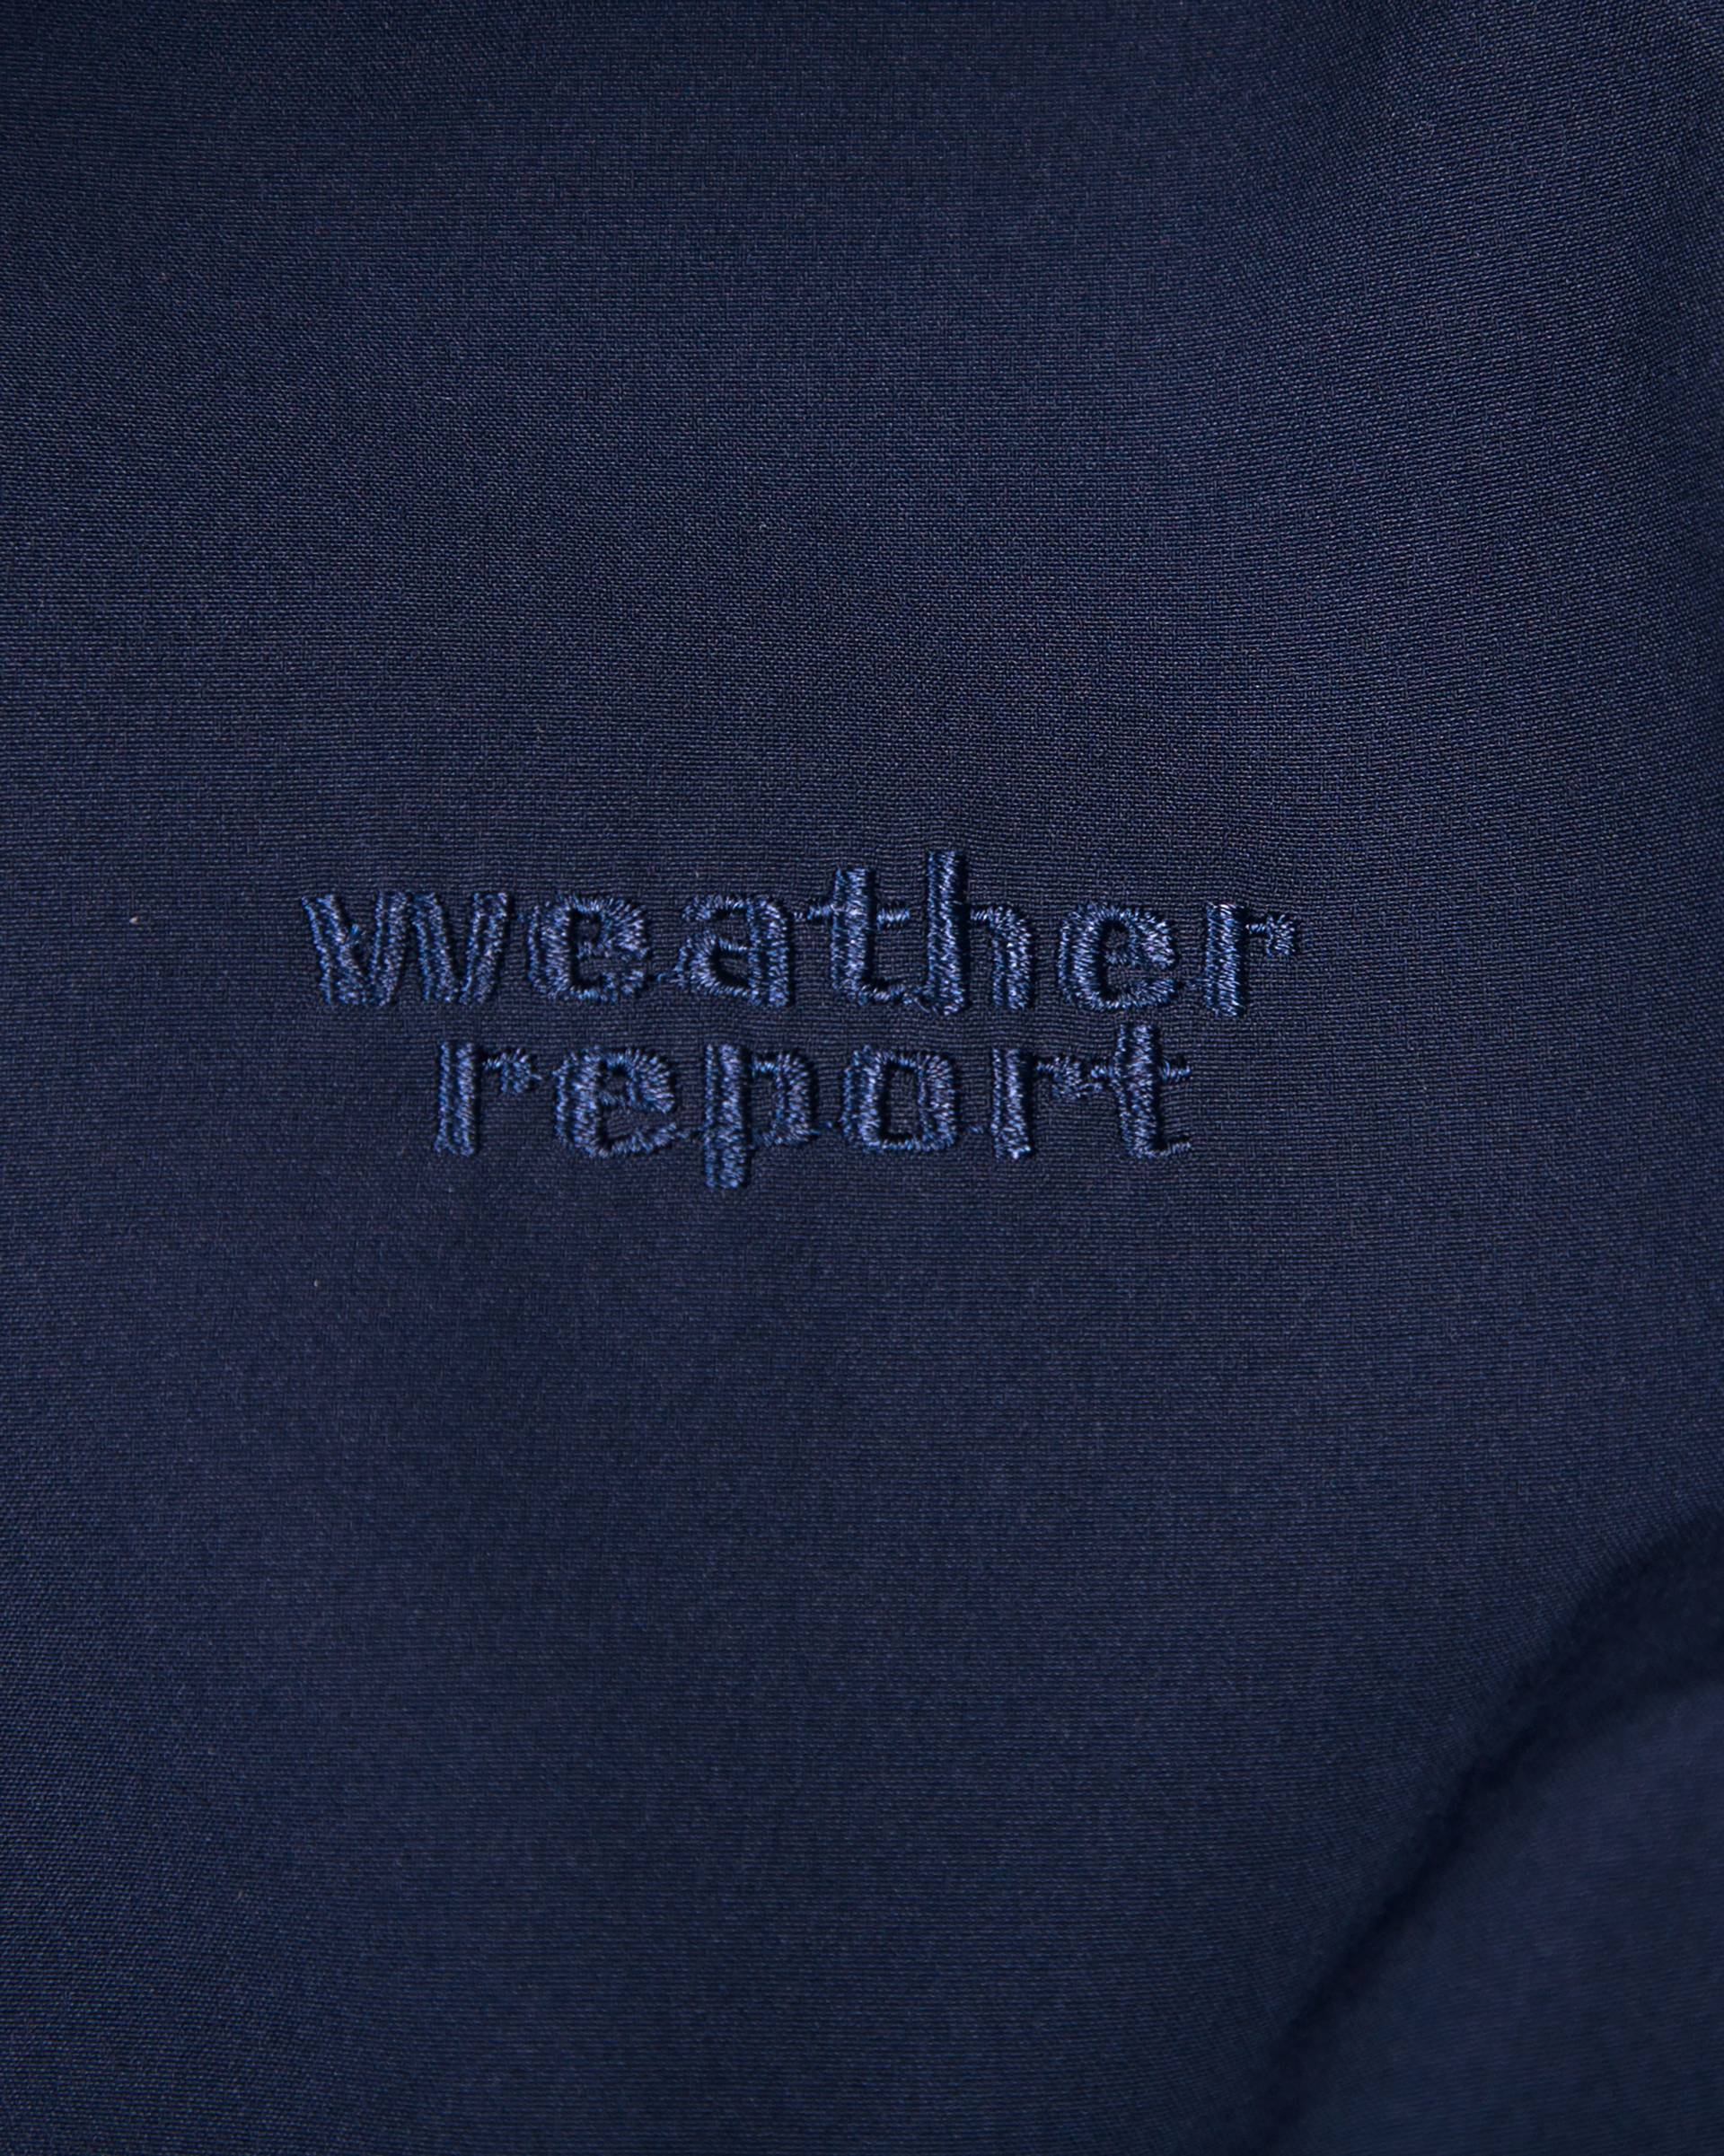 Ветровка Weather Report Soft Shell Синяя